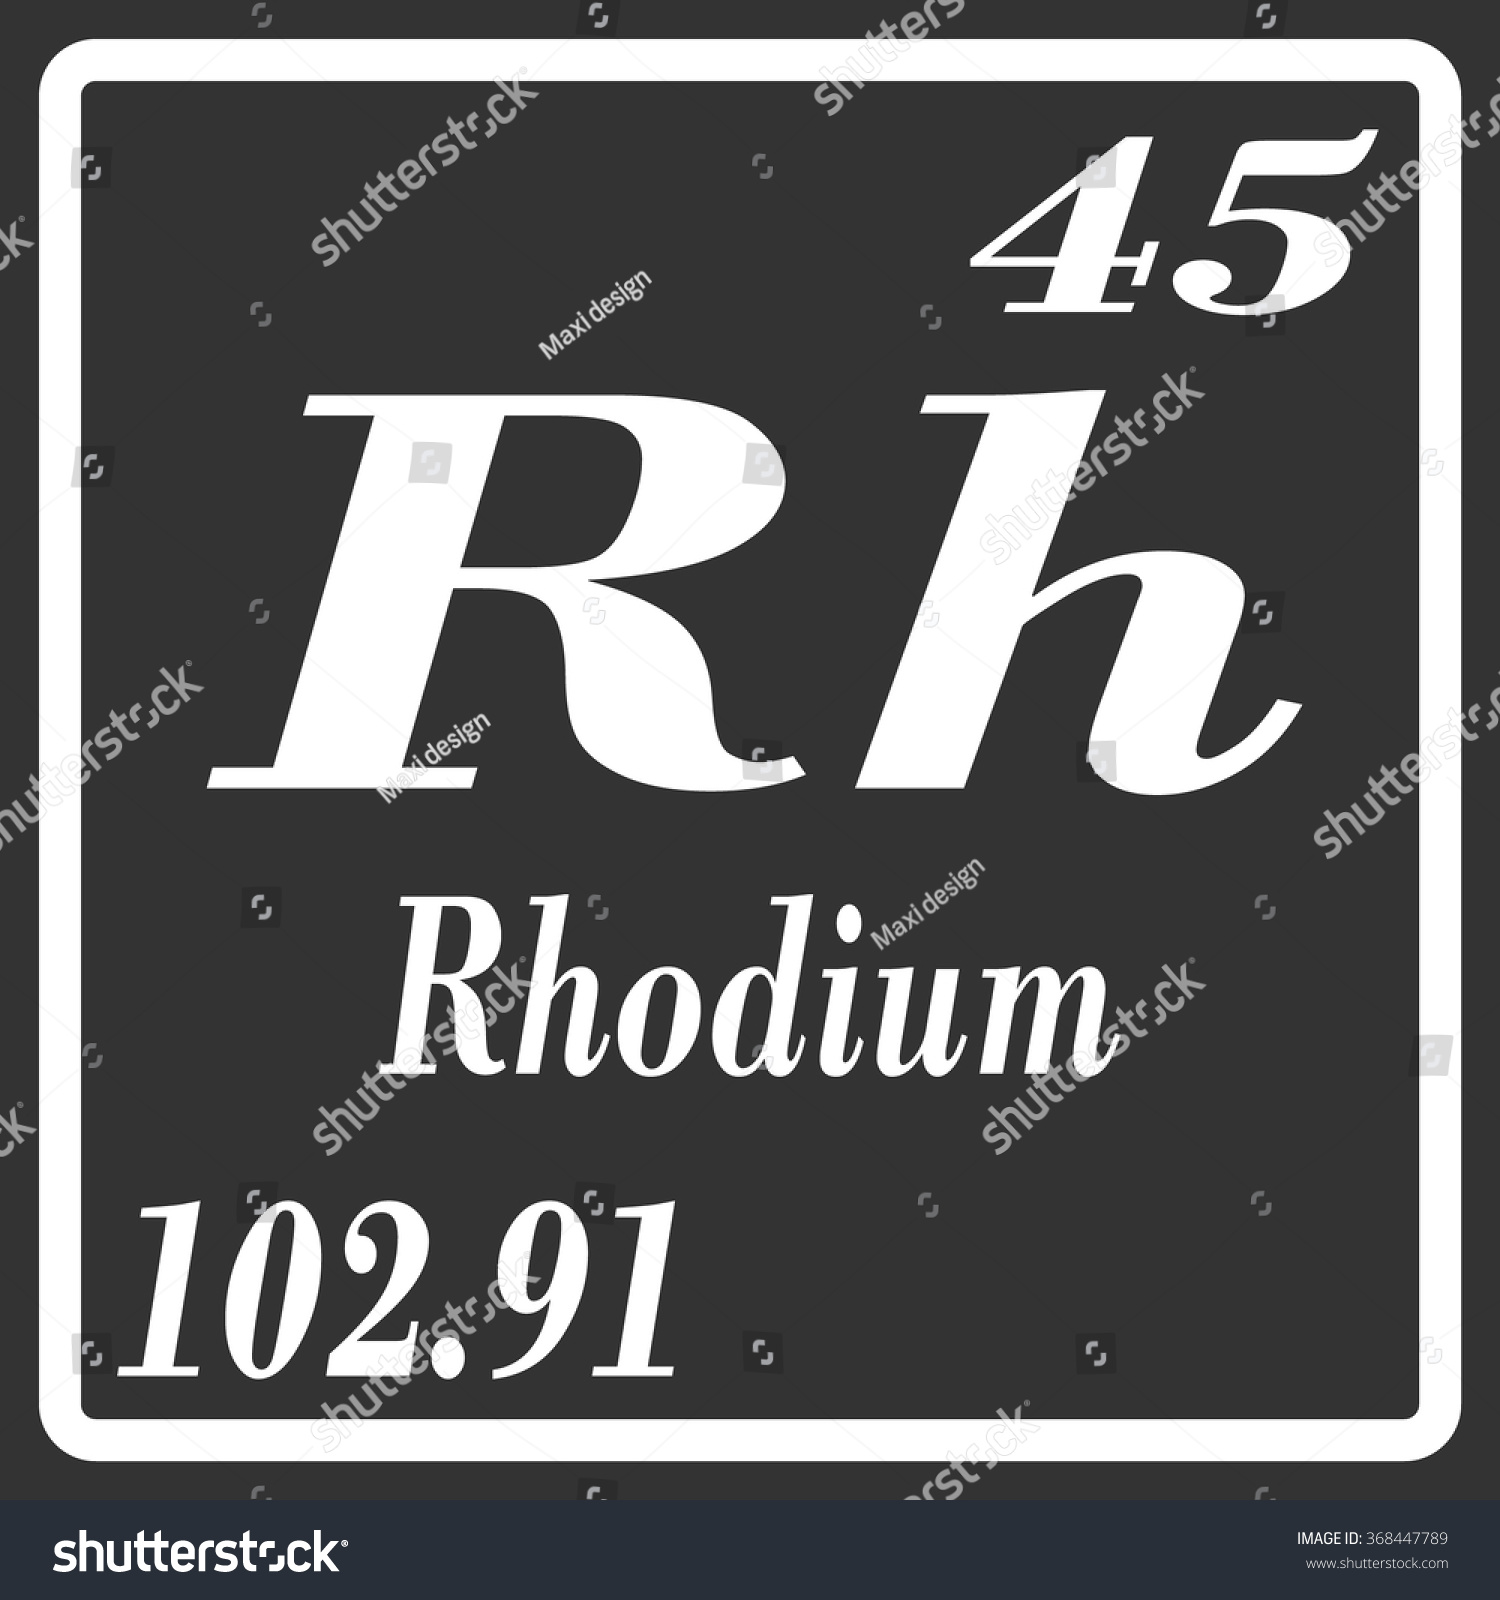 Rhodium on periodic table image collections periodic table images periodic table elements rhodium stock vector 368447789 shutterstock periodic table of elements rhodium gamestrikefo image collections gamestrikefo Image collections